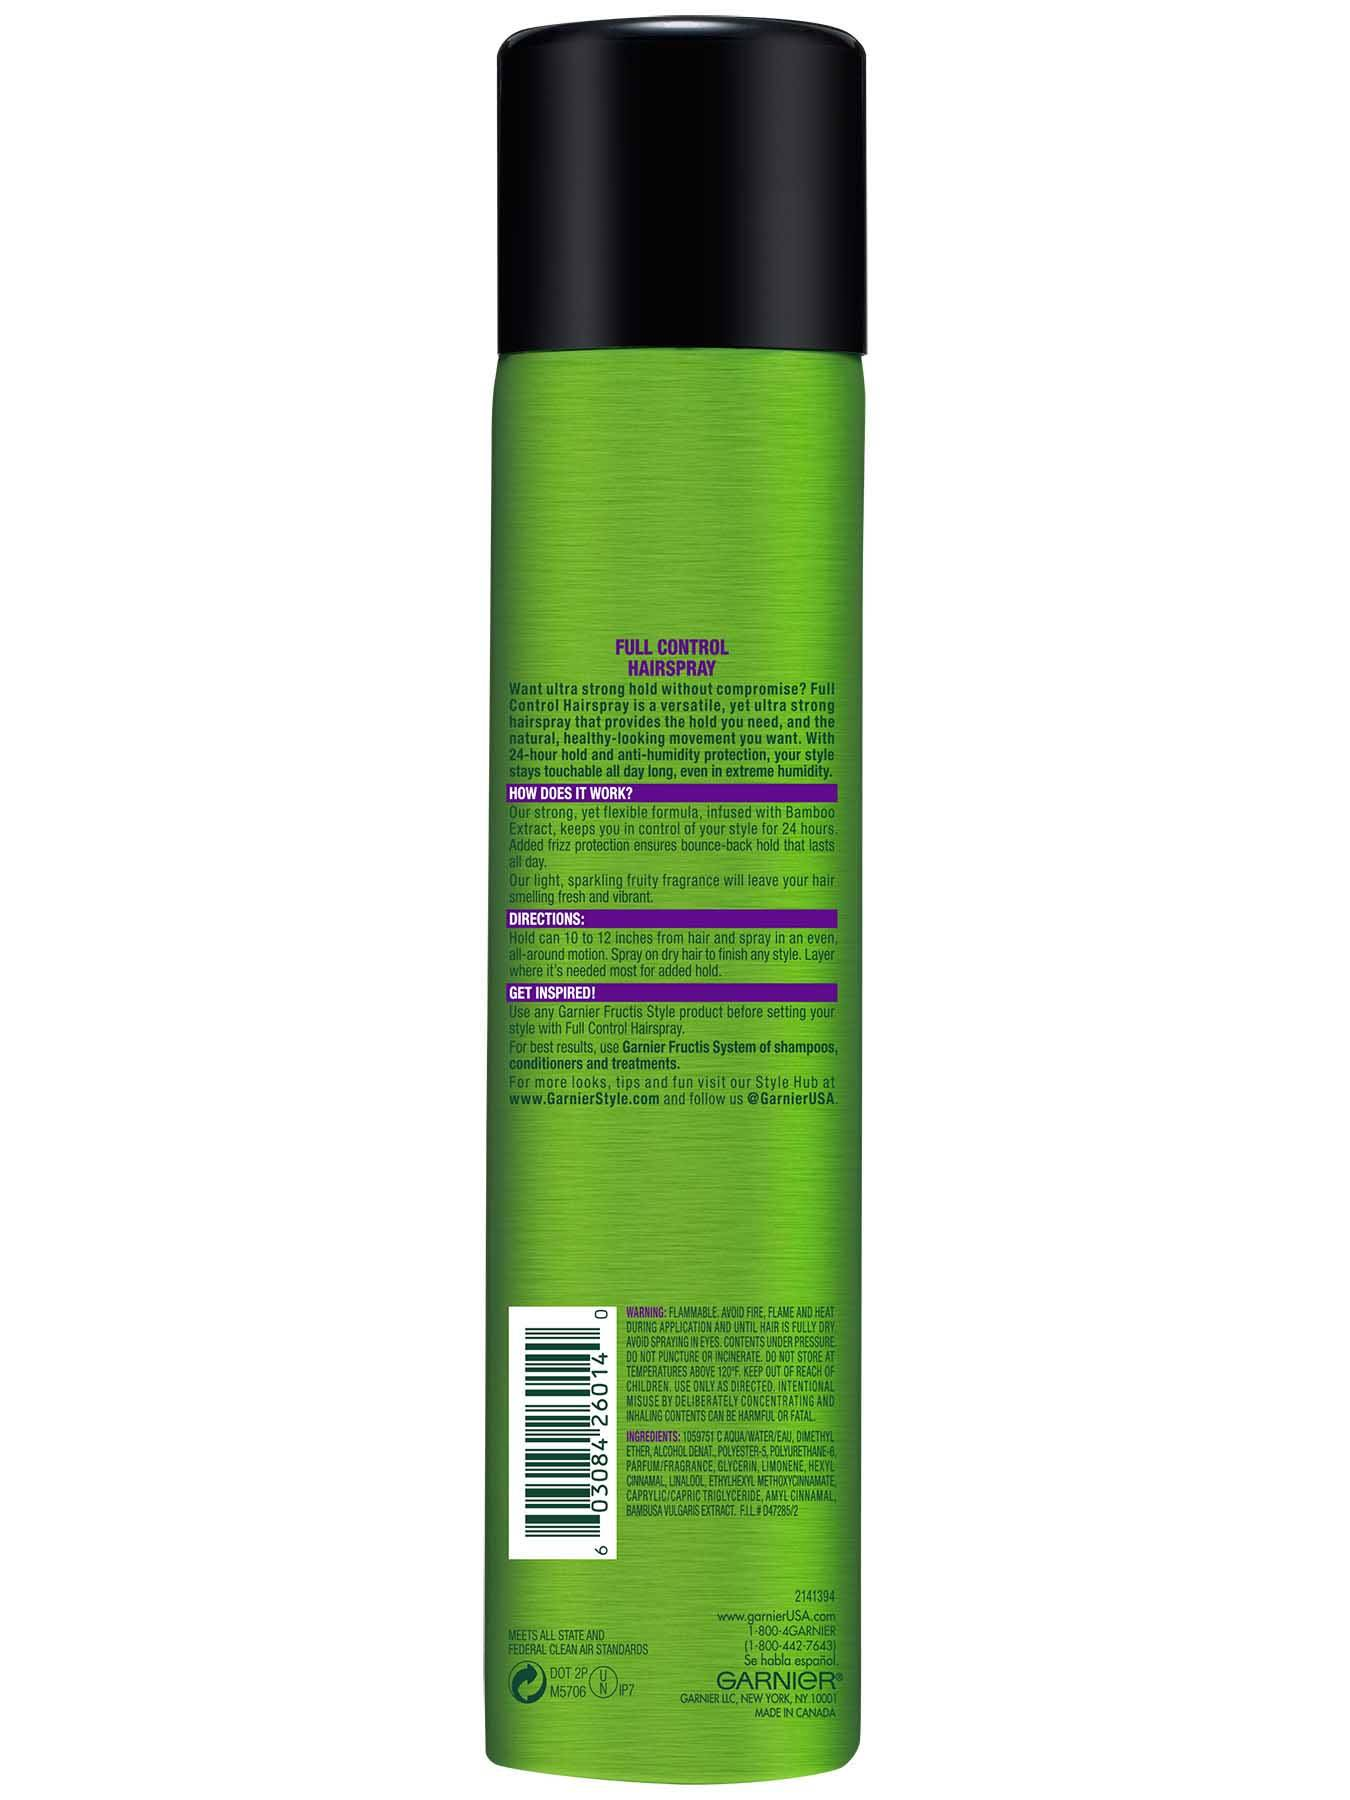 Garnier Fructis Style Full Control Hairspray Back Of Bottle